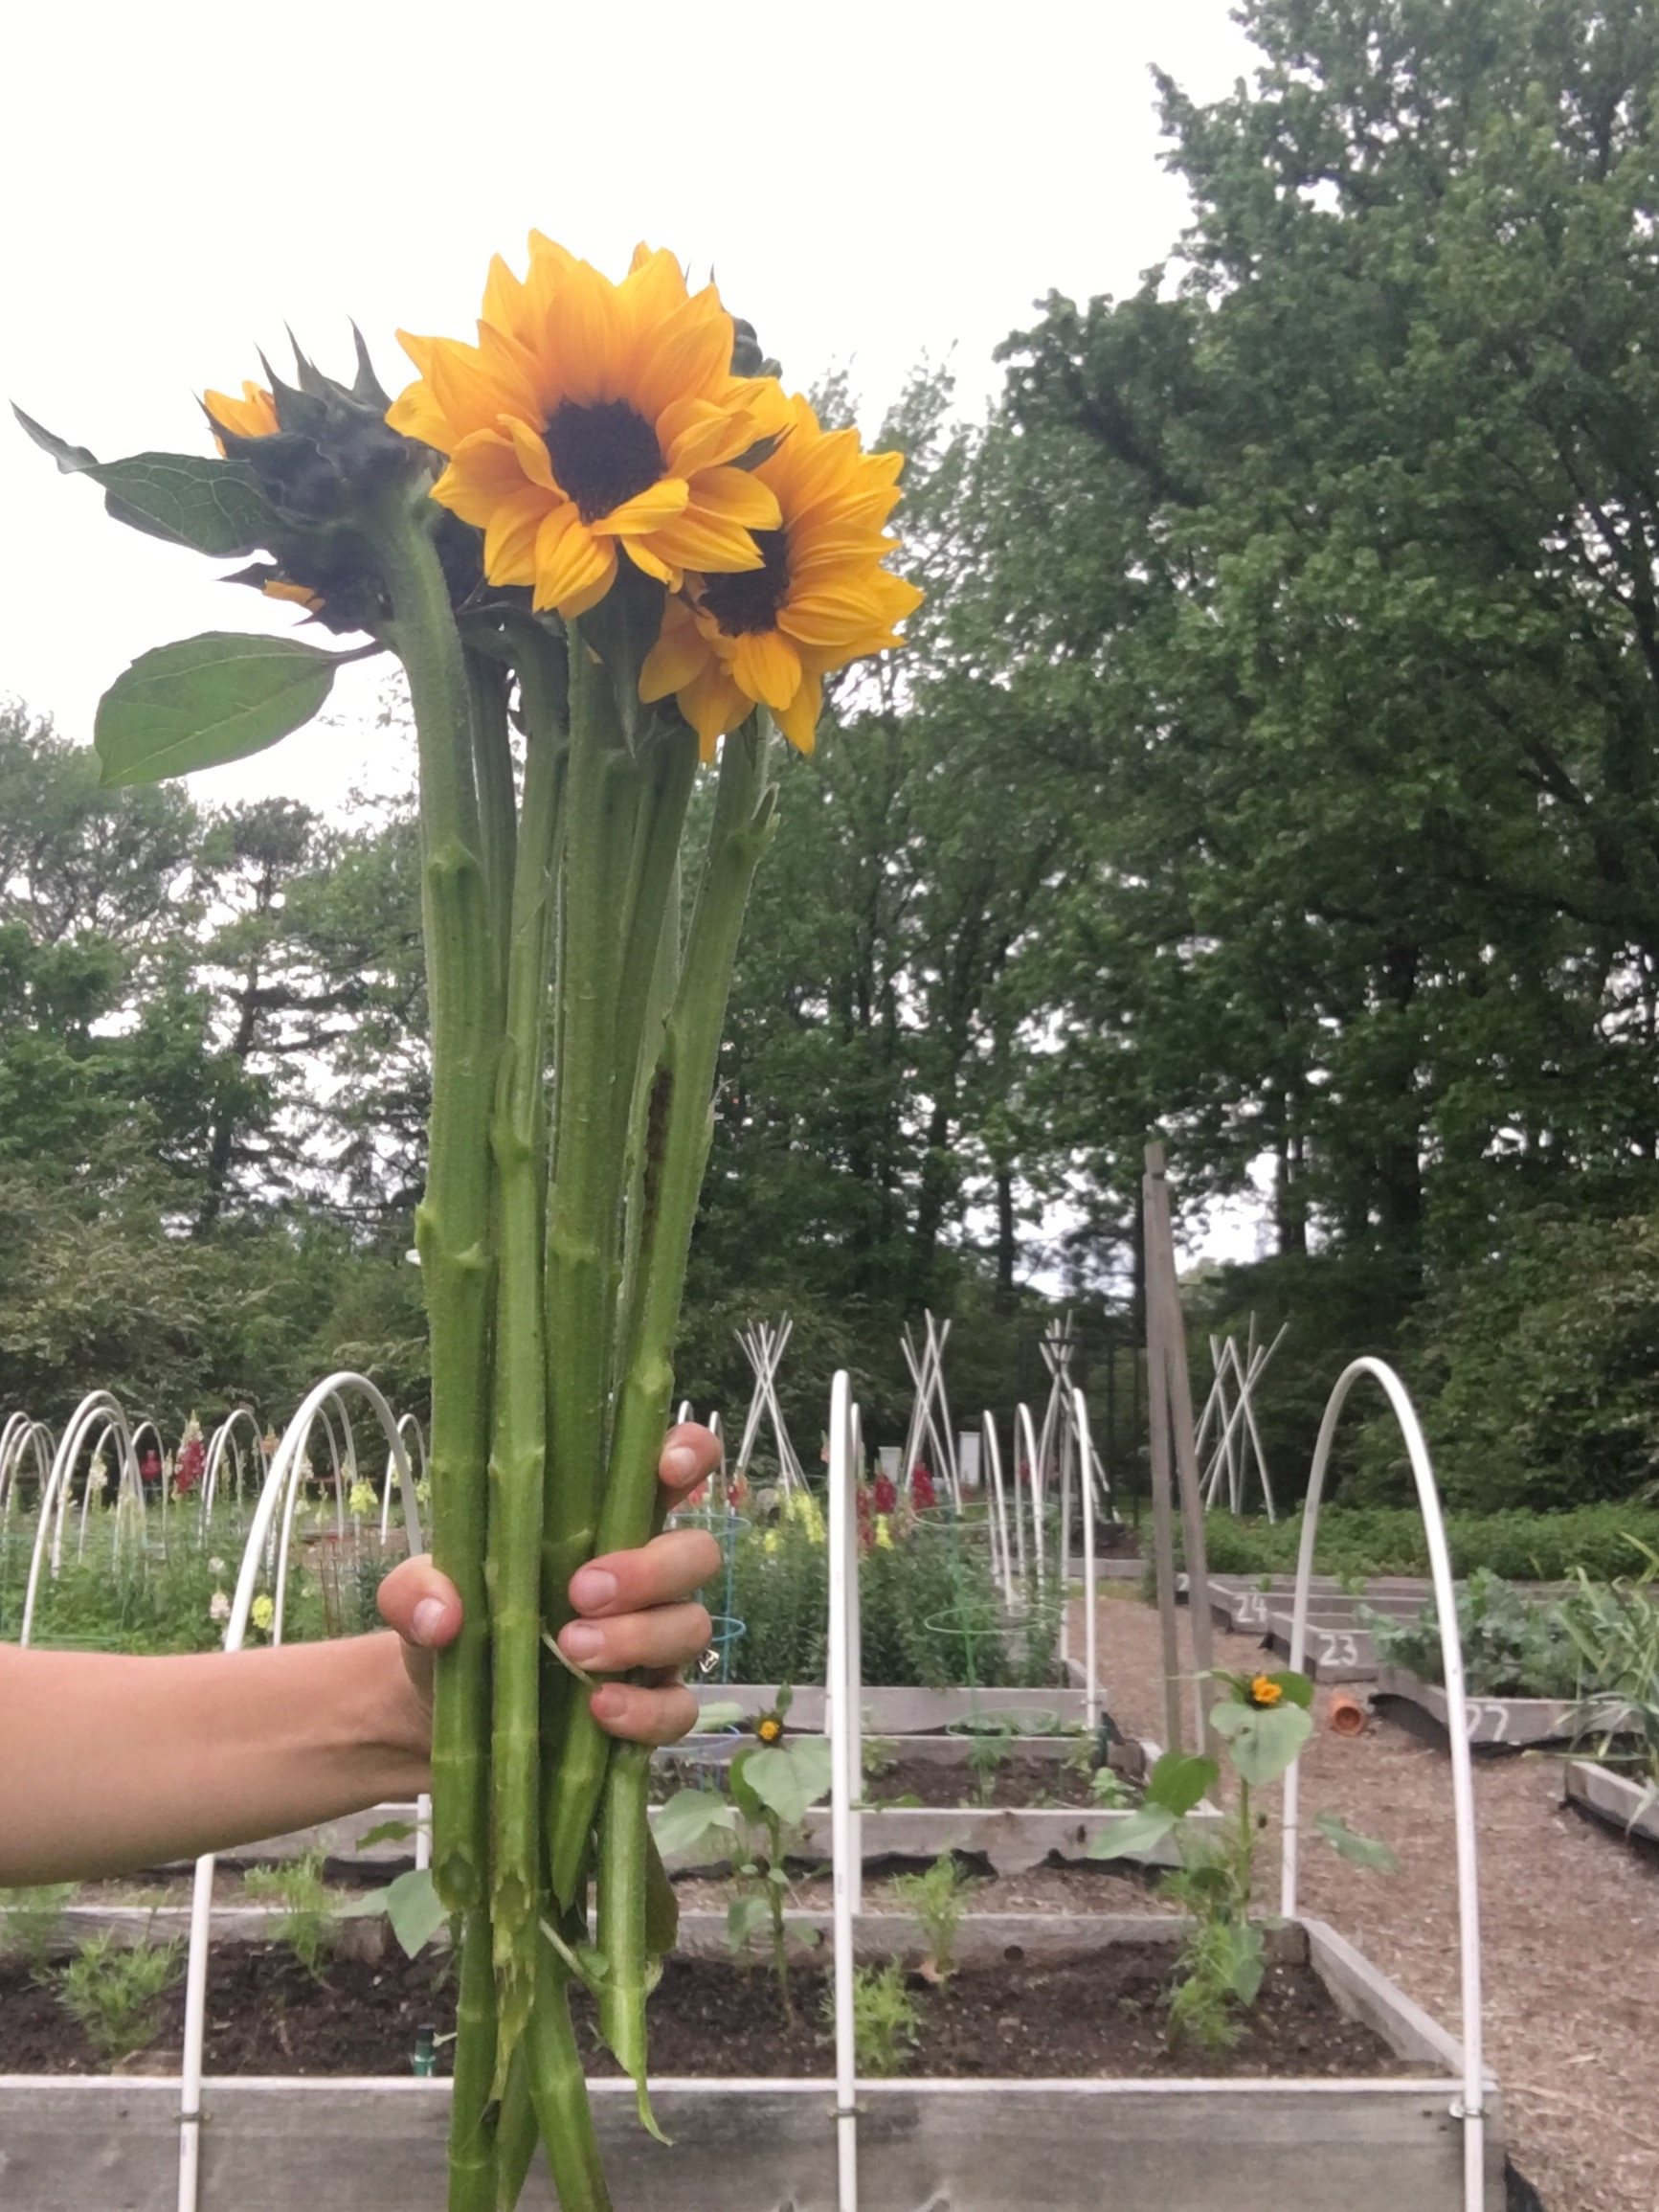 Sunflowers harvested from the interplanted bed (pictured behind) of cosmos.